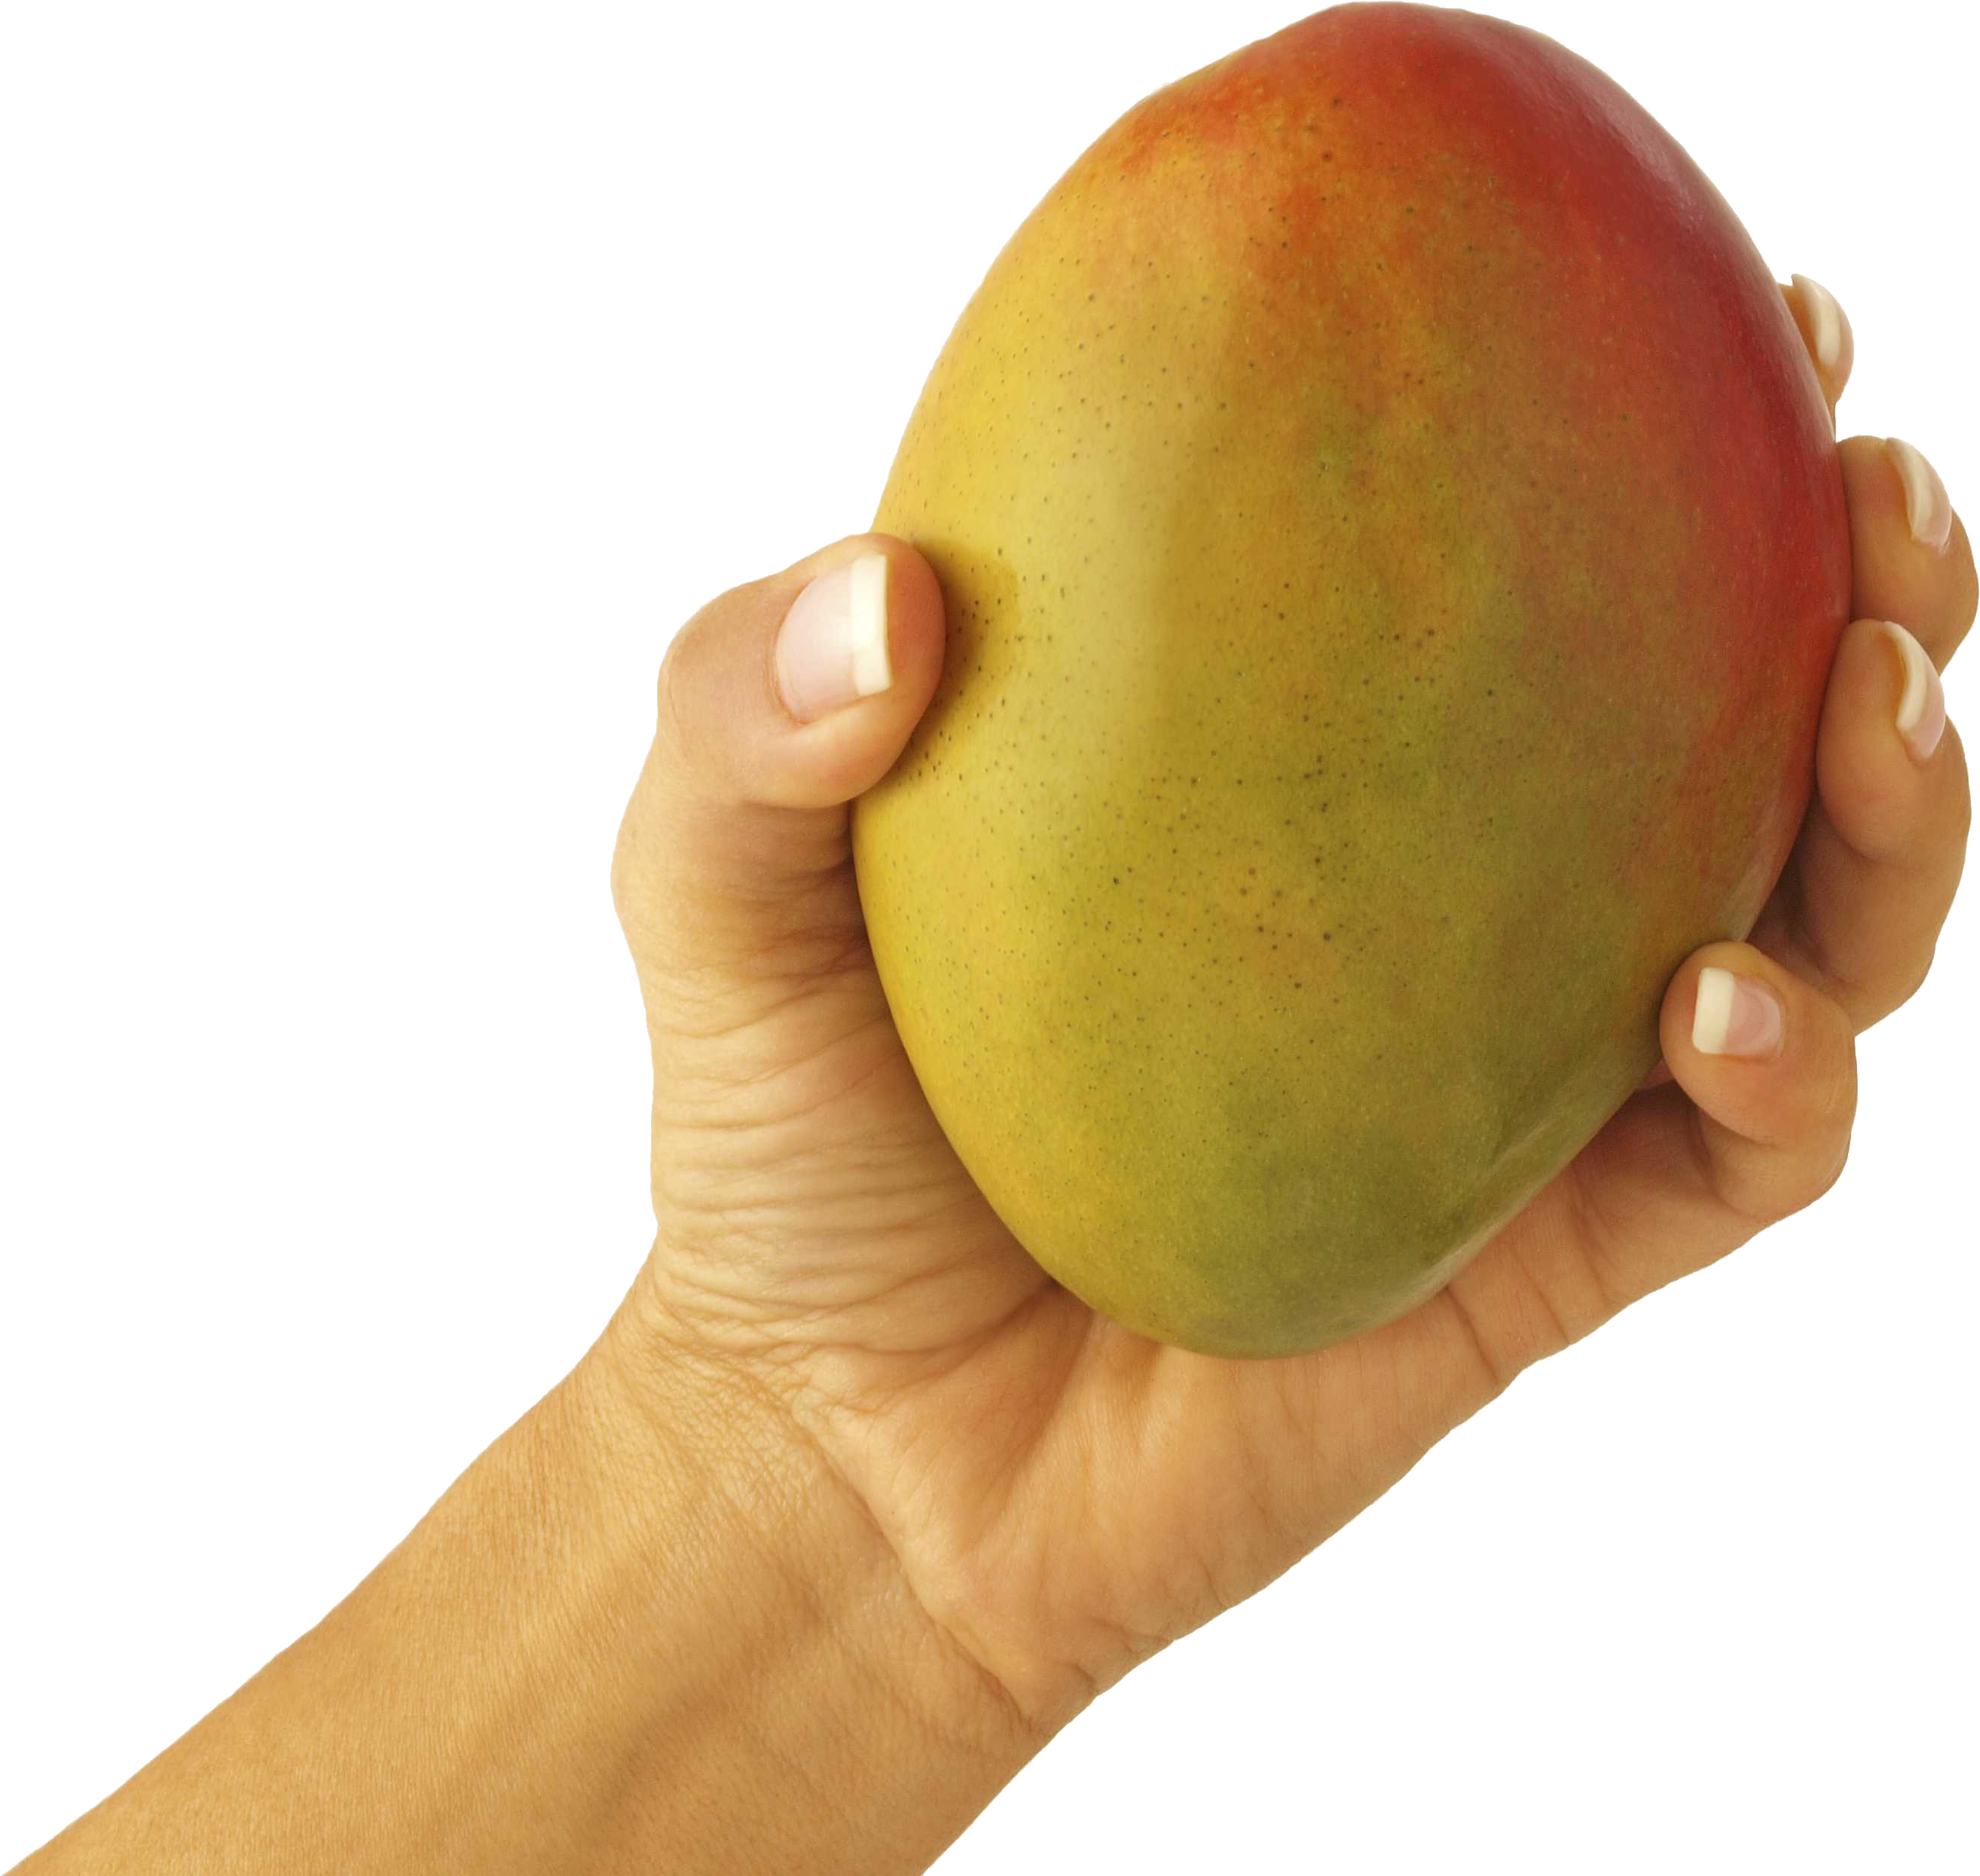 png royalty free stock Mango in hand PNG image